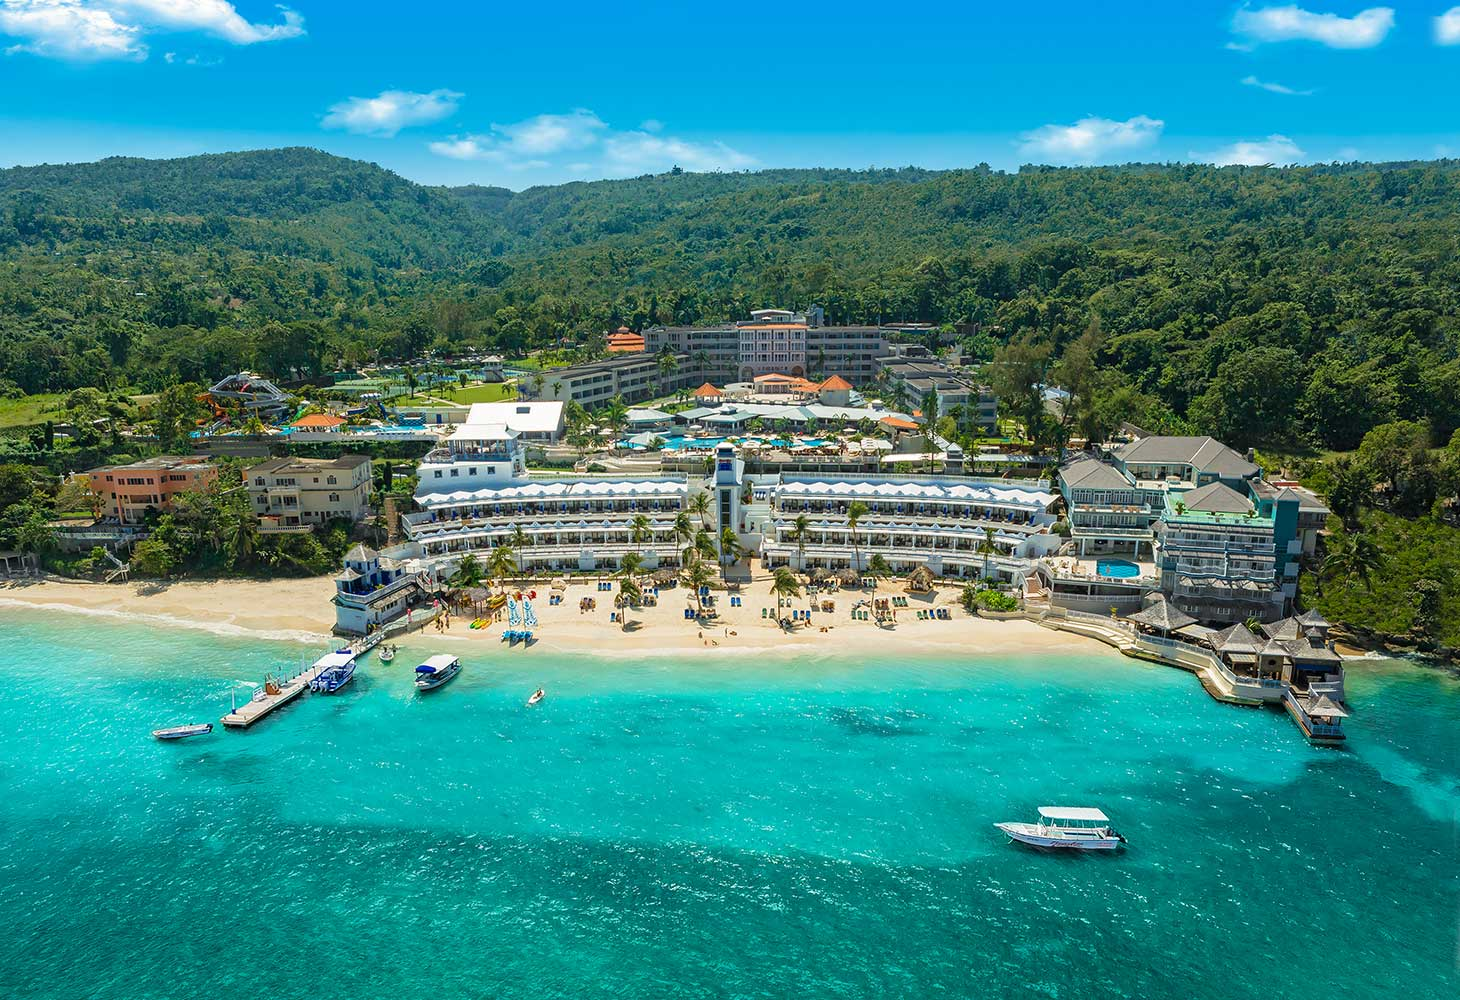 Jamaica's family beachfront getaway click to view this gorgeous resort